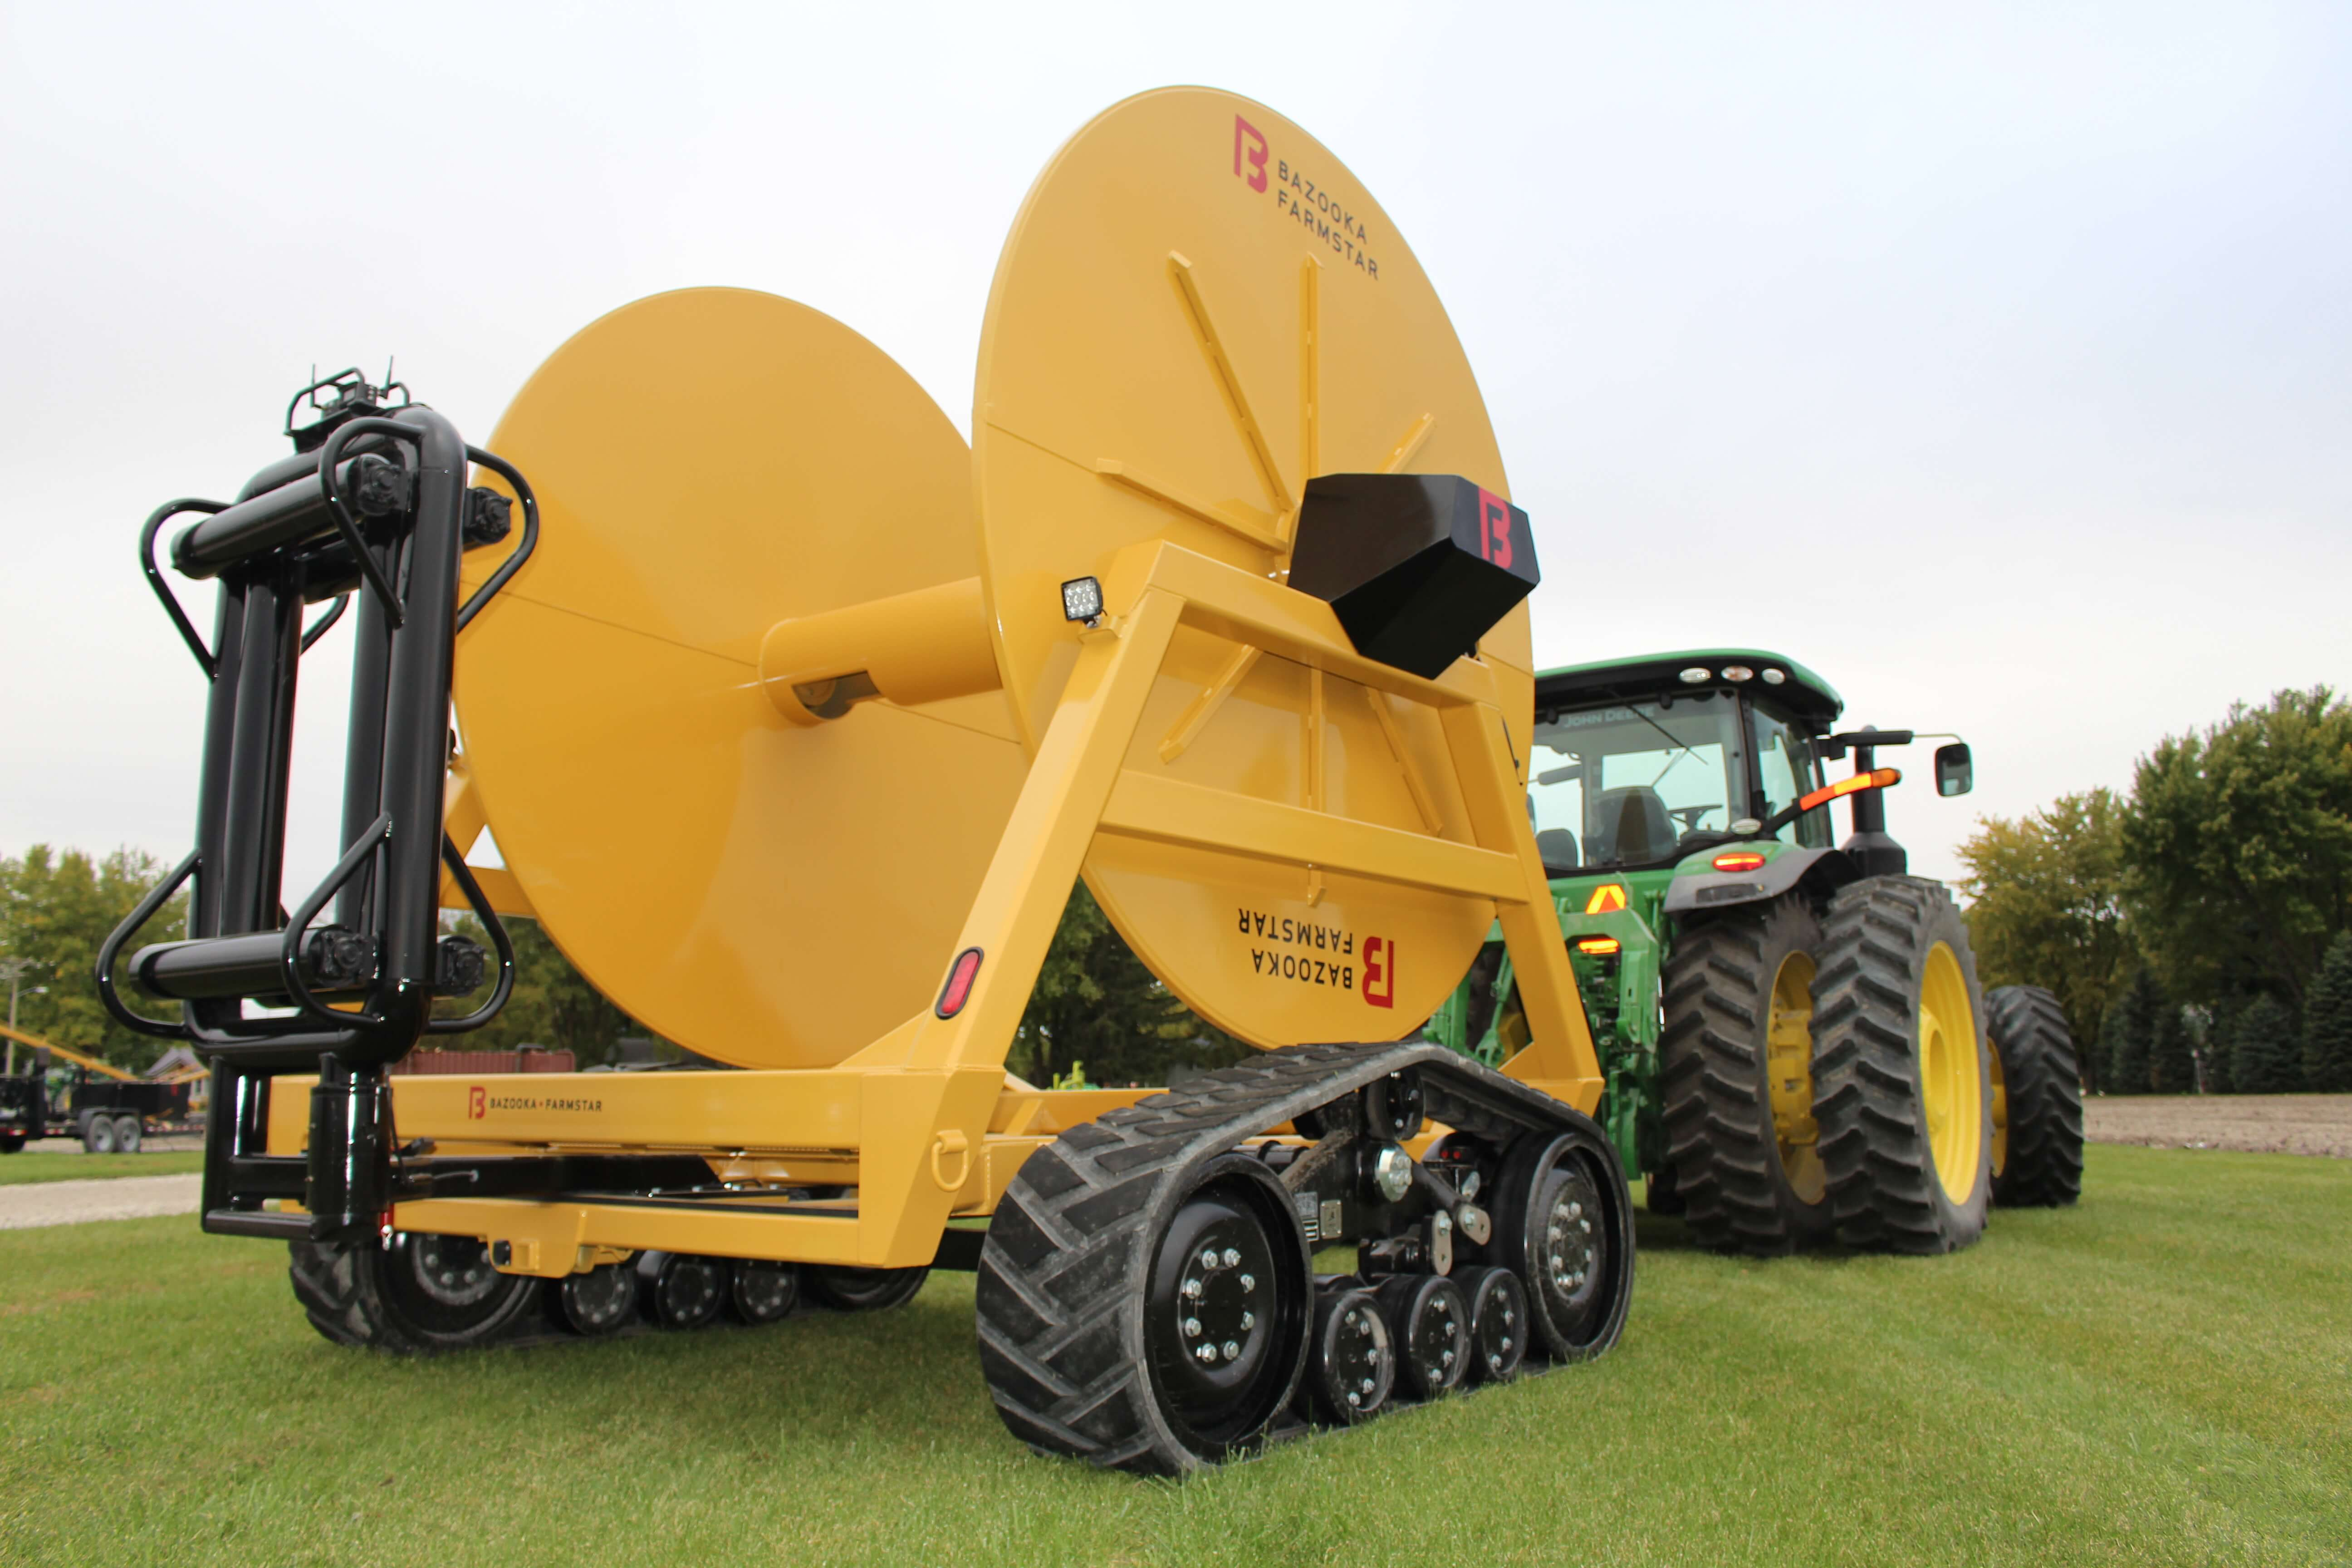 Eclipse Large Hose Reel for Manure Application